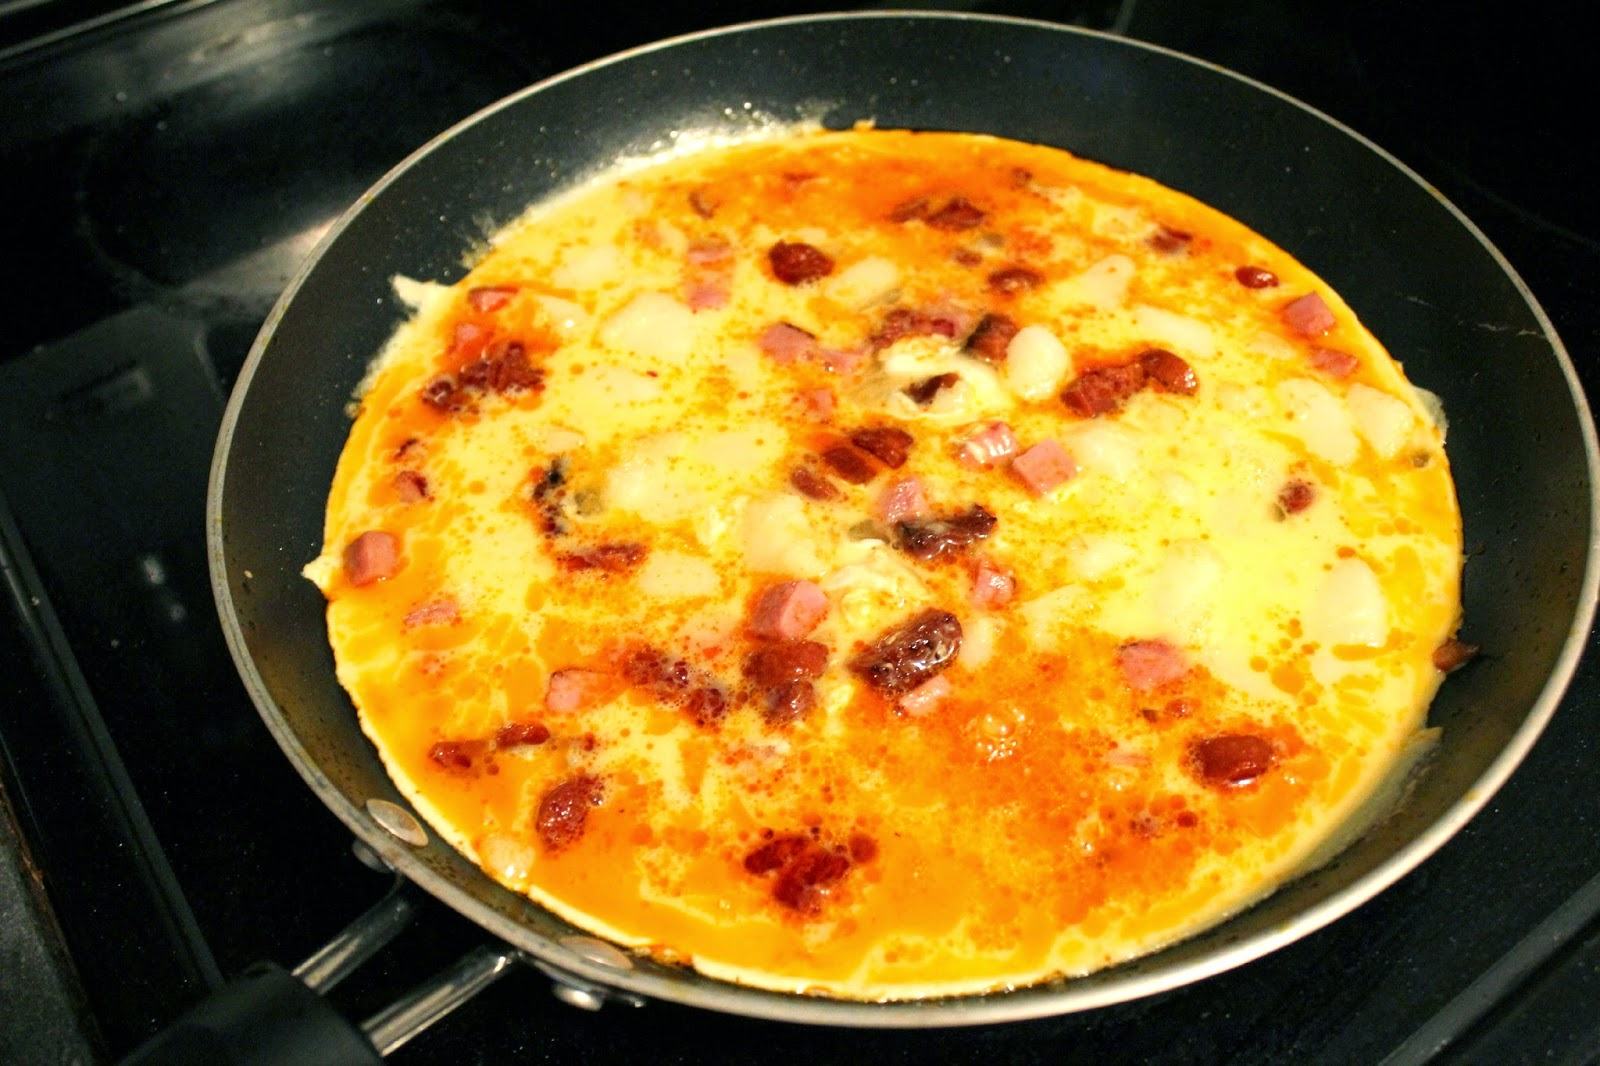 How to make a spanish omelette #SeasonedGreetings #ad